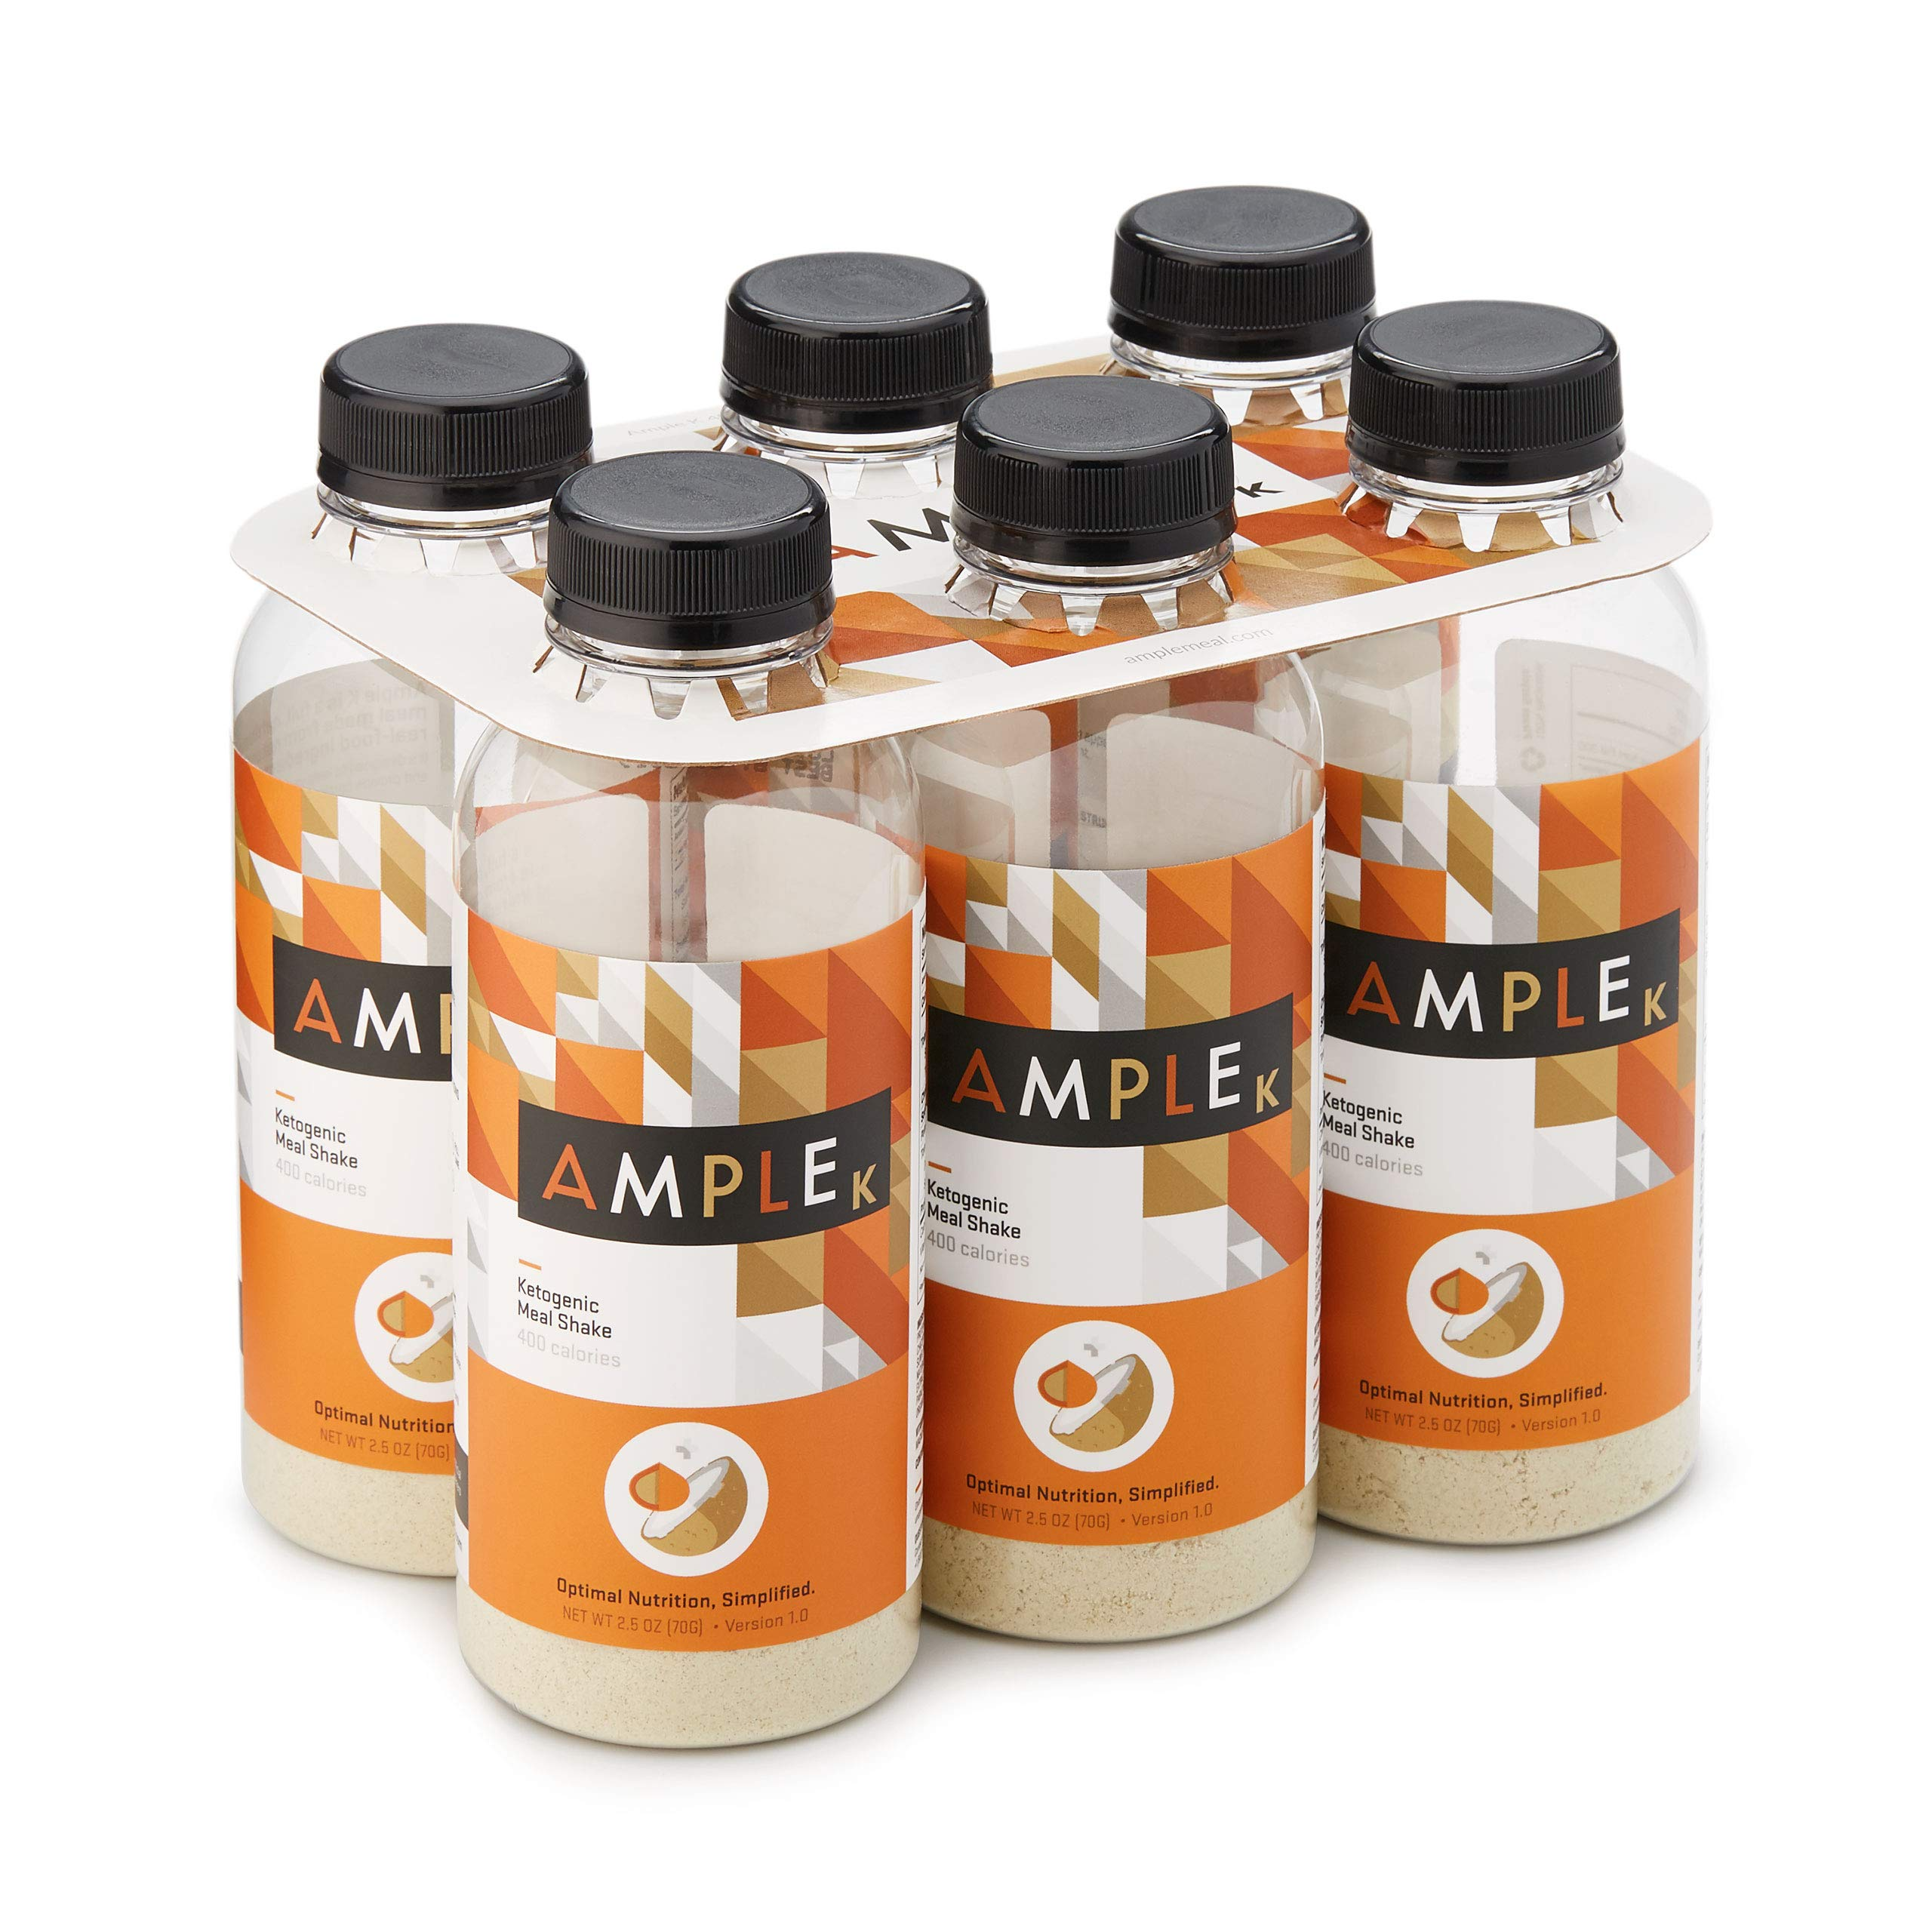 Ketogenic Meal Replacement Shake with only 3g Net Carbs in a Bottle, (Pack of 6) Meals, Regular 400 Calories, Made with Natural Real Food Ingredients. Ample K Ketogenic Formula